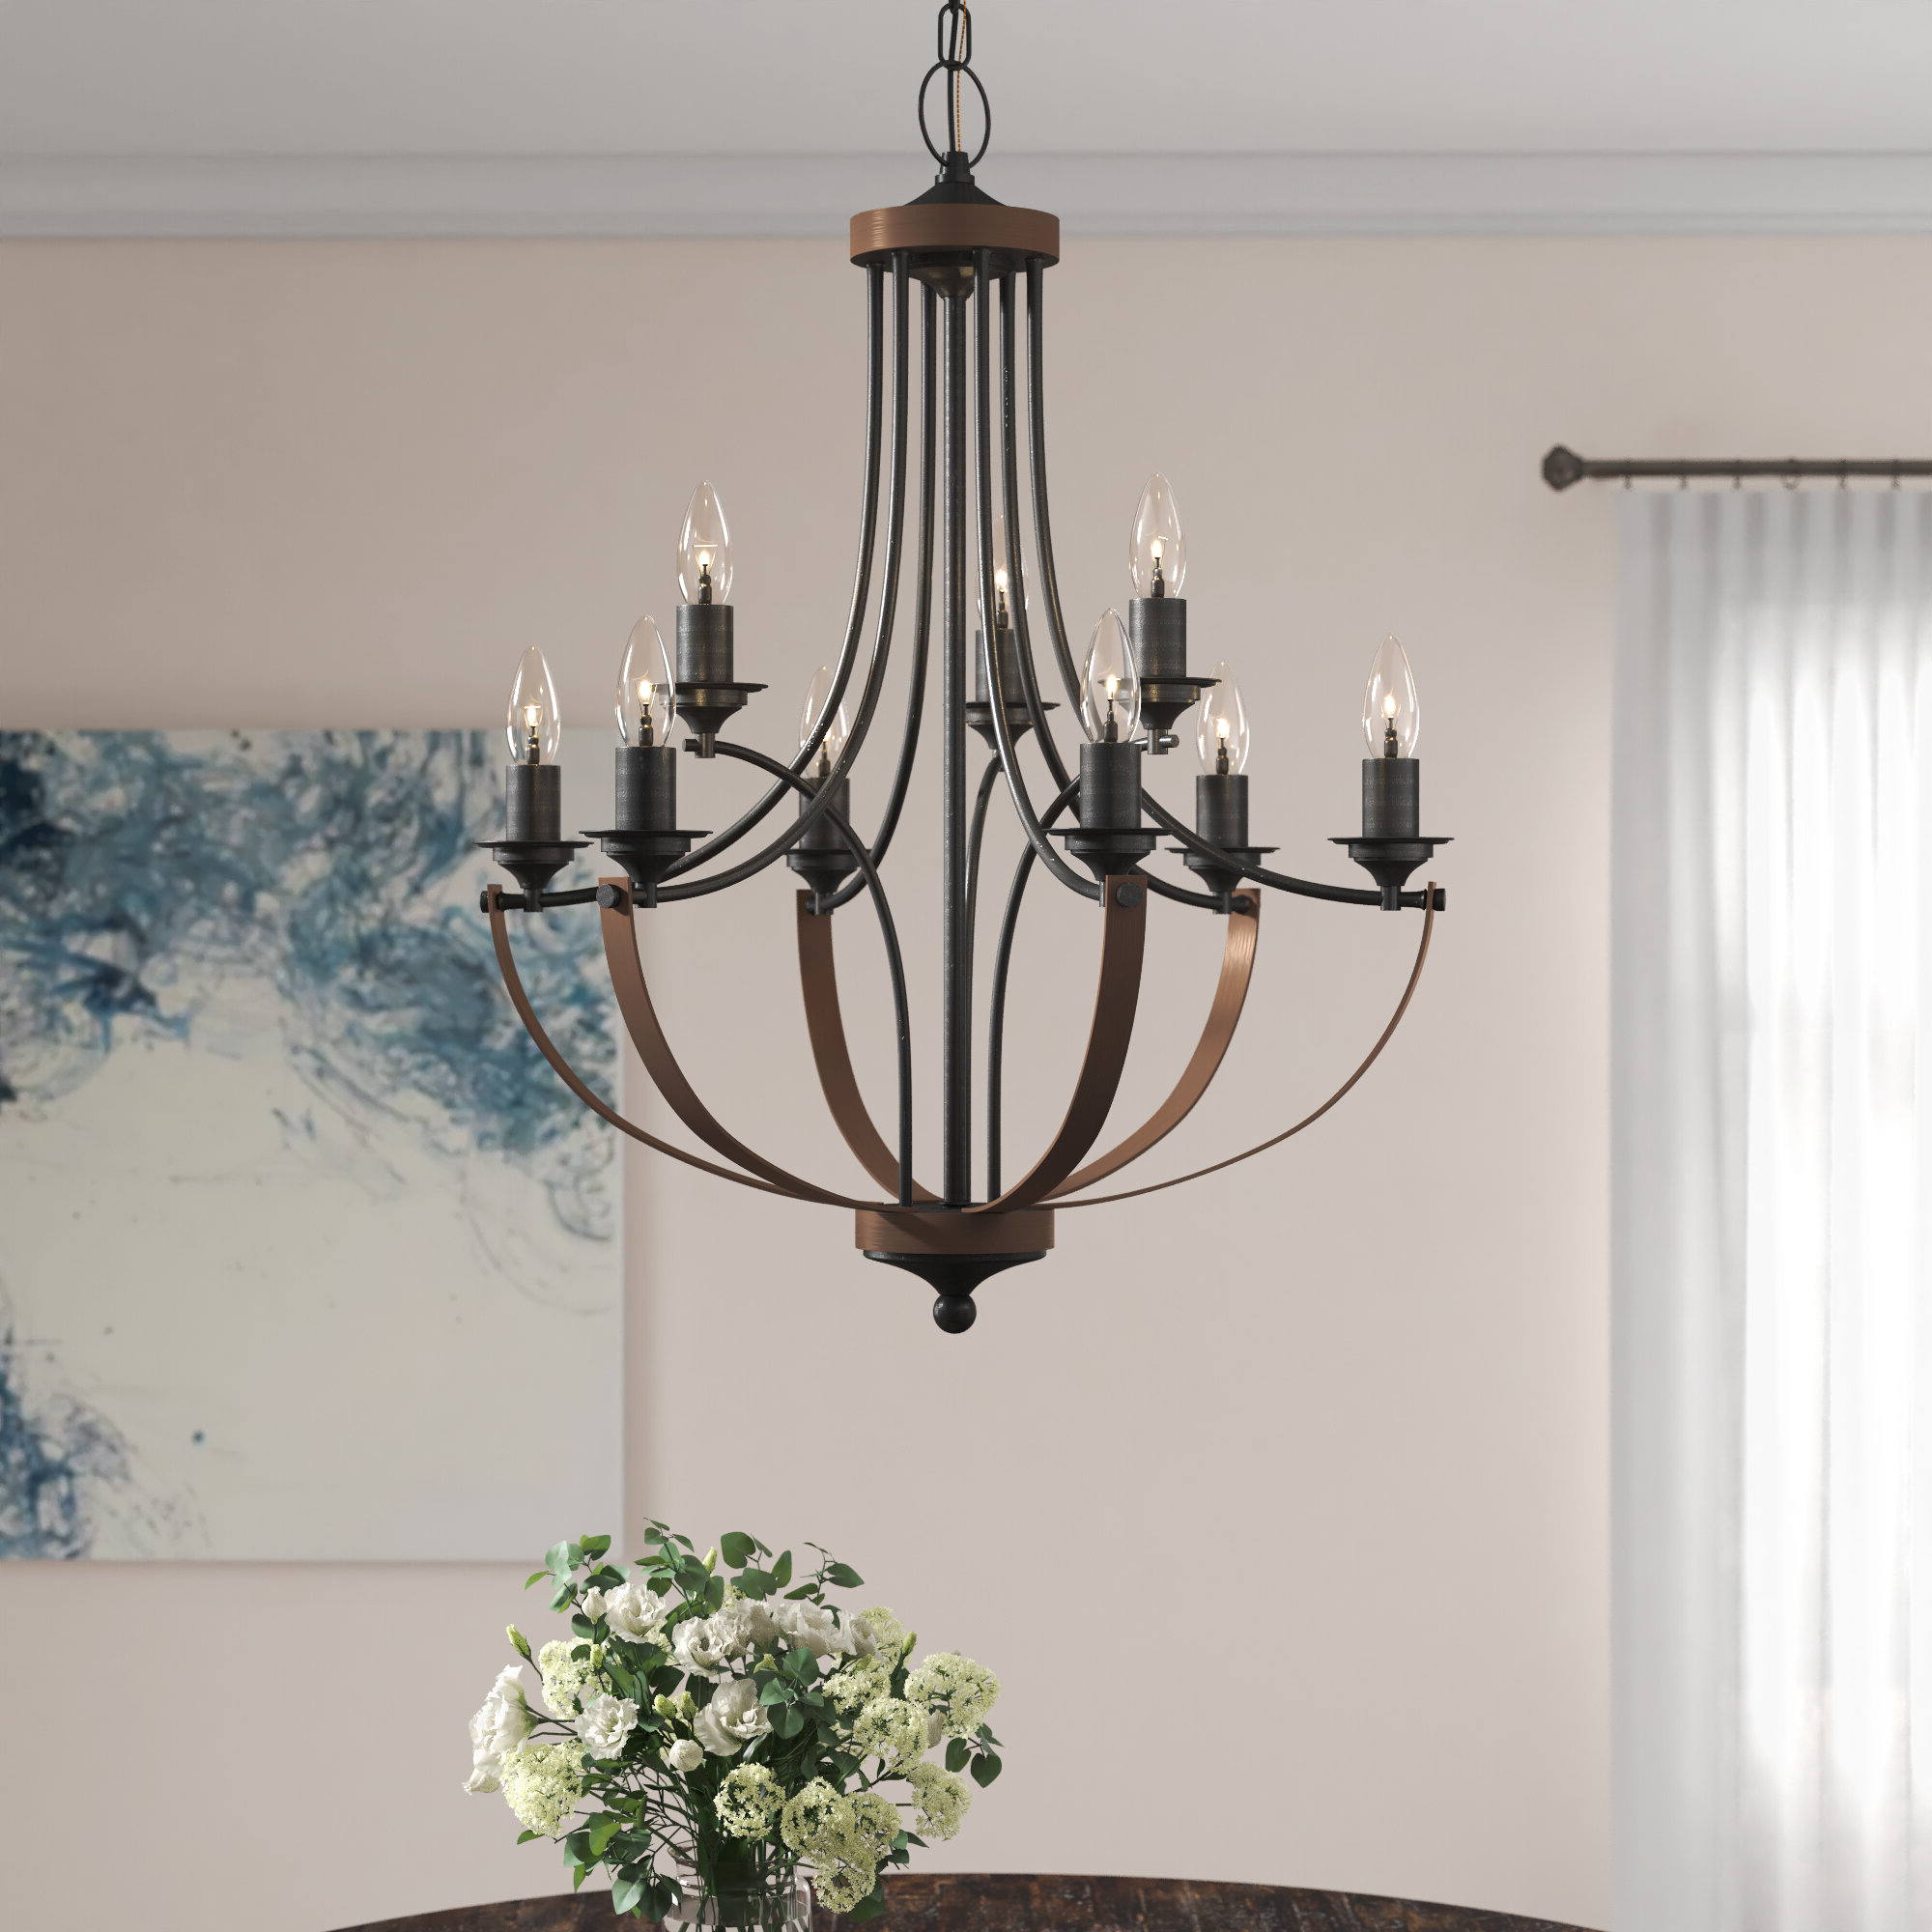 Giverny 9 Light Candle Style Chandeliers Intended For Most Popular Camilla 9 Light Candle Style Chandelier (View 6 of 20)